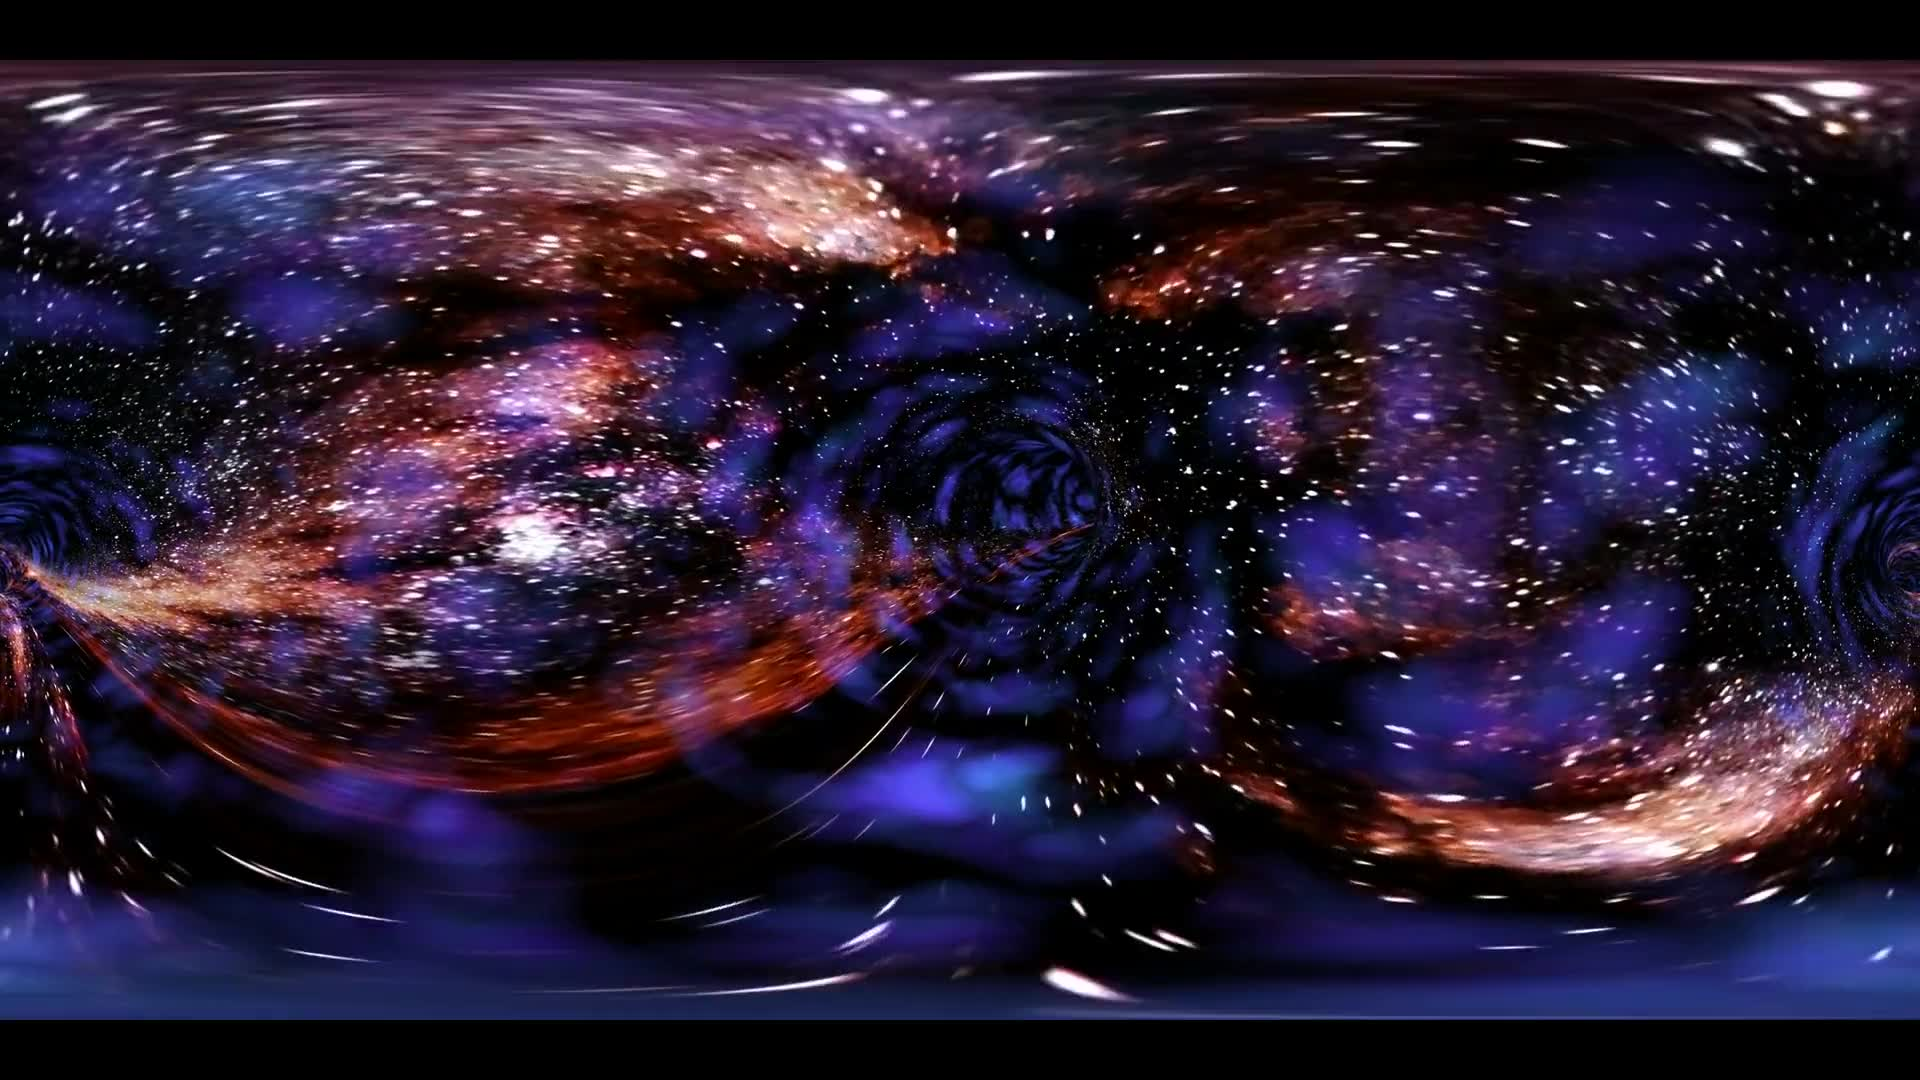 VR 360 Wormhole straight through time and space, clouds, and millions of stars. Warp straight ahead through this science fiction wormhole. virtual reality